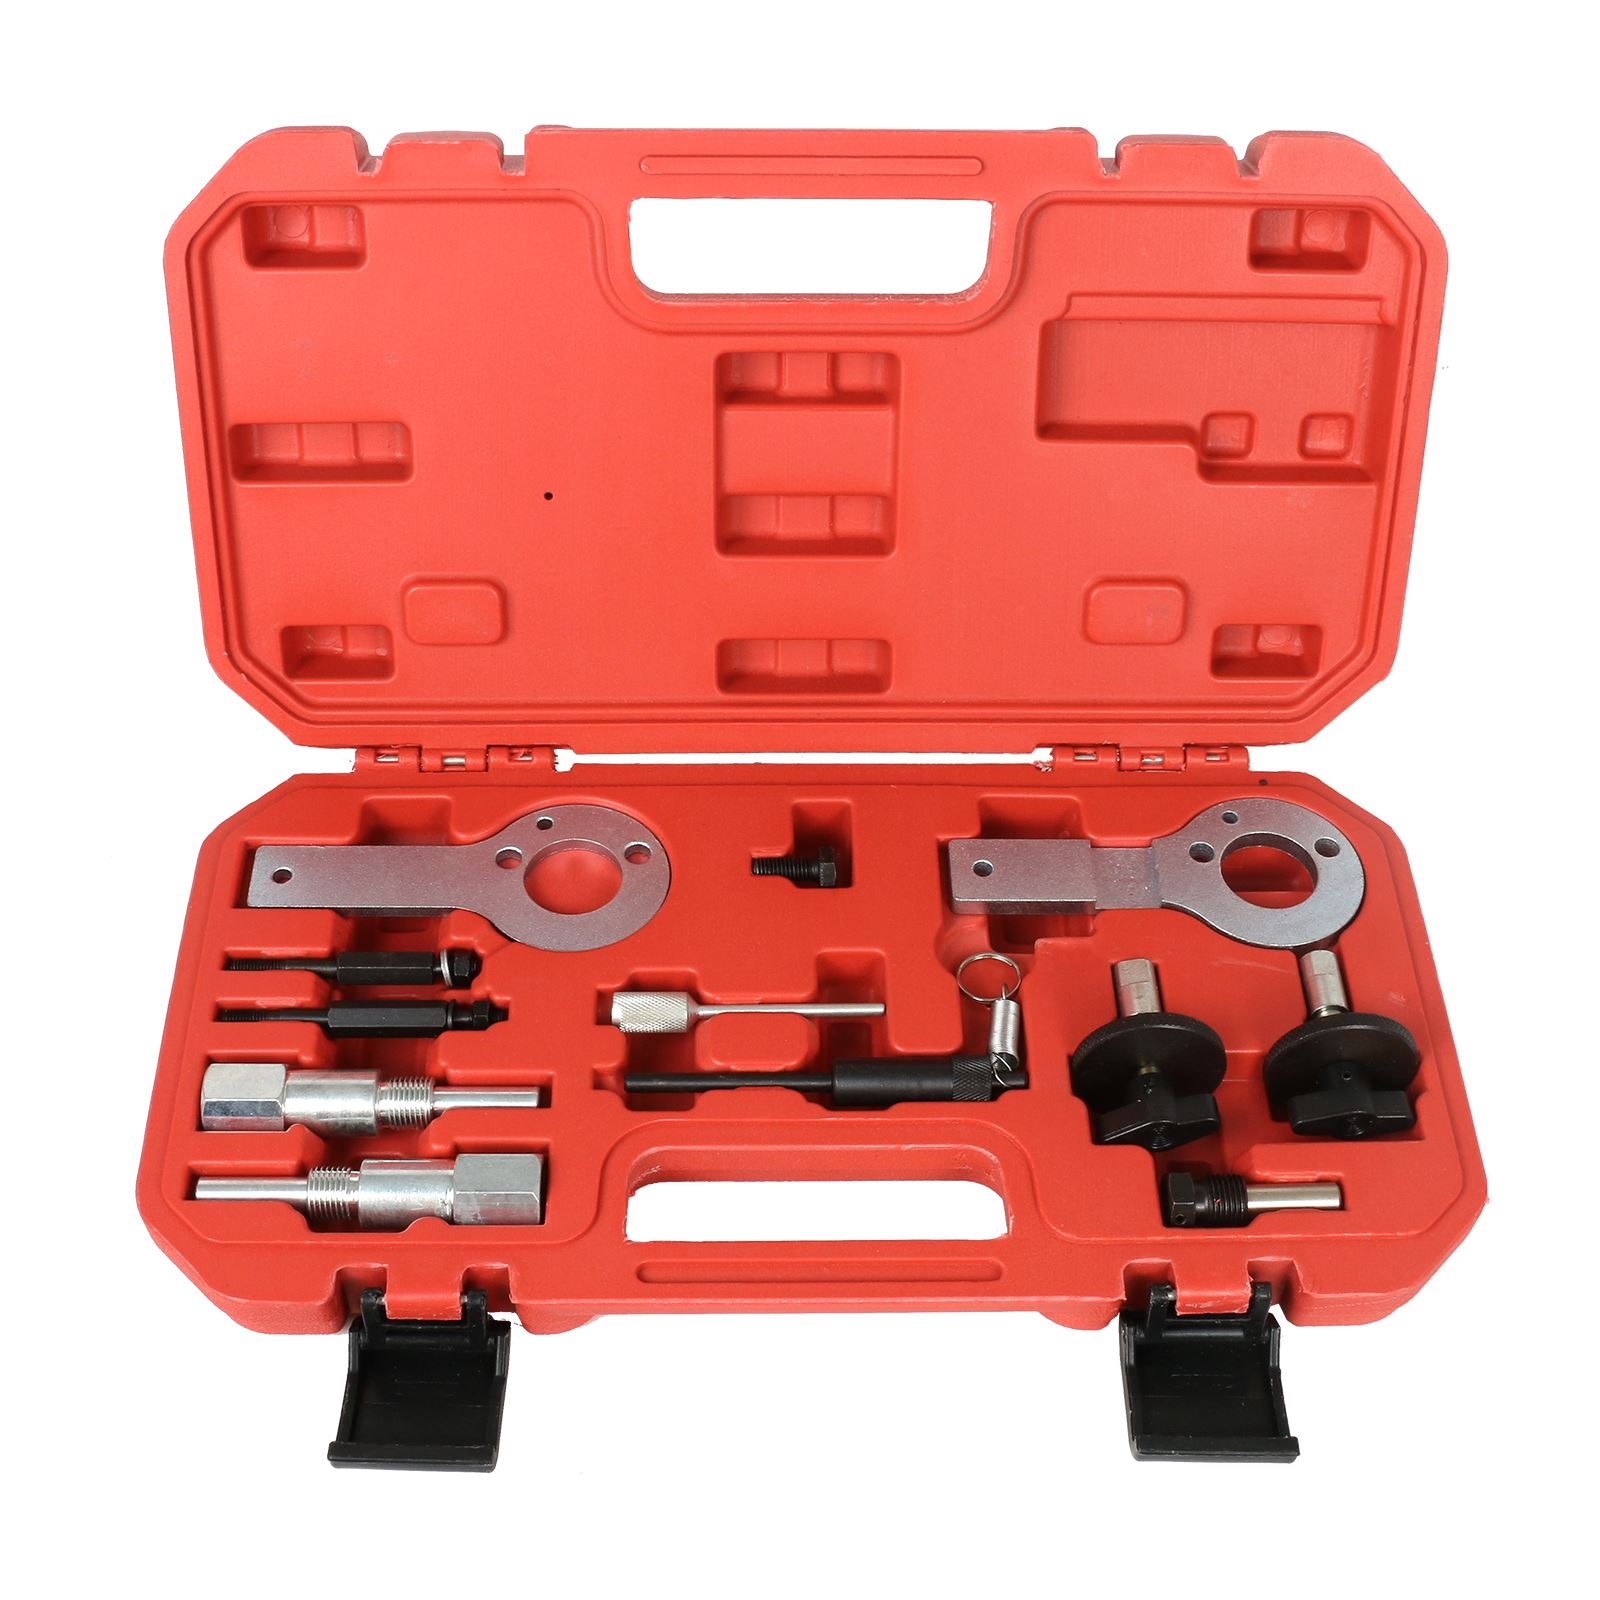 Engine Timing Special Tools for Opel 1.9Engine Timing Special Tools for Opel 1.9